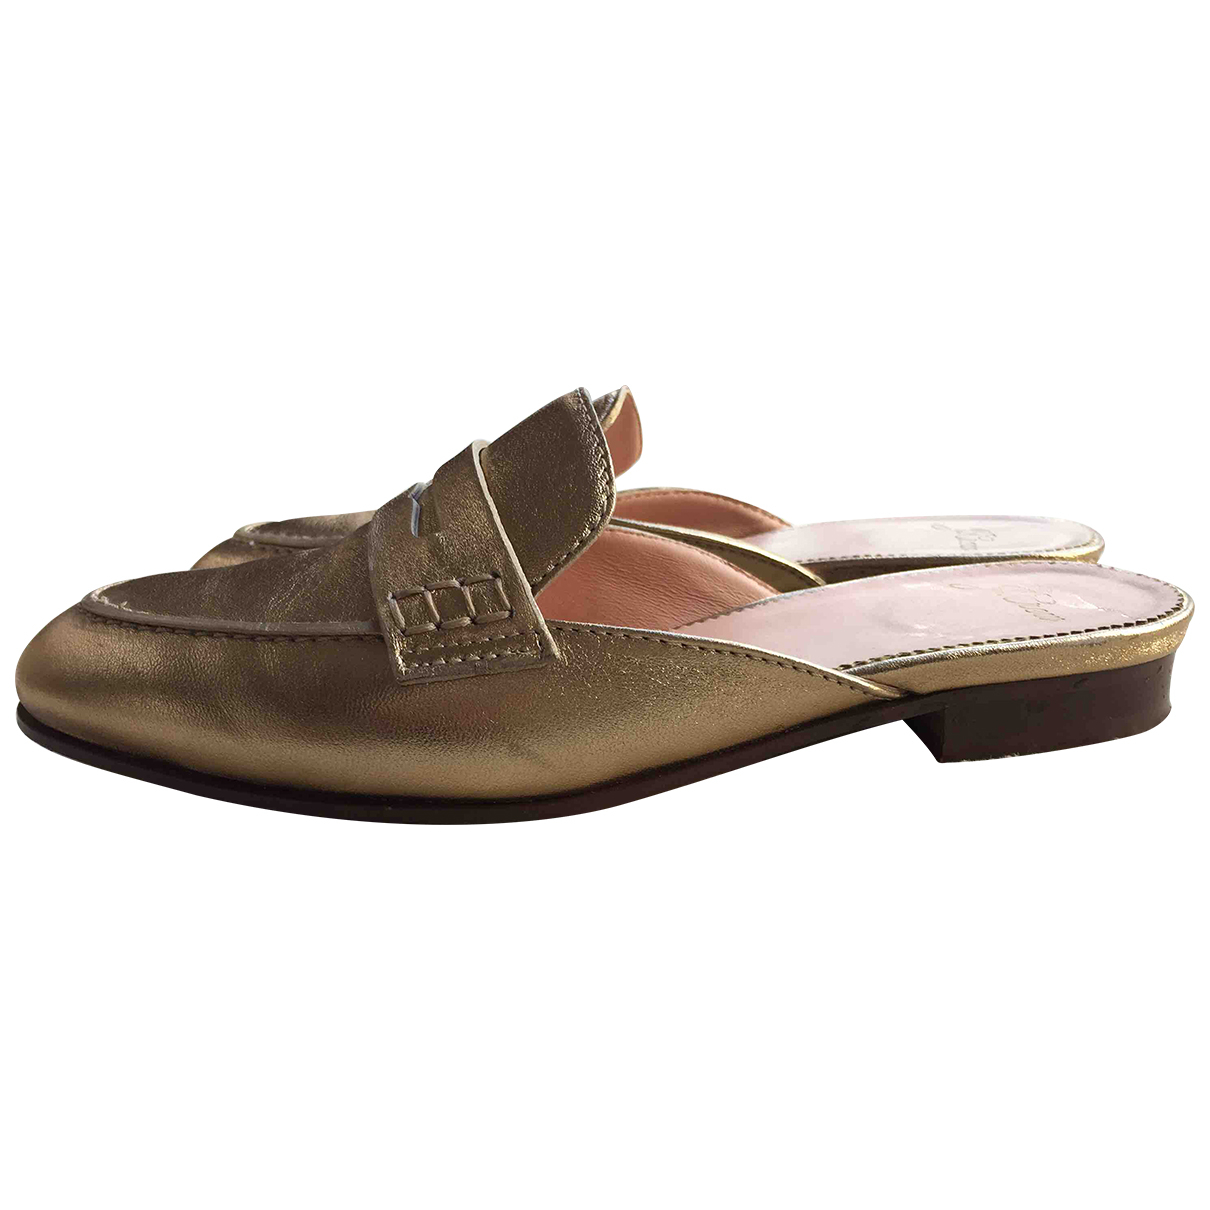 J.crew N Gold Leather Mules & Clogs for Women 4 UK